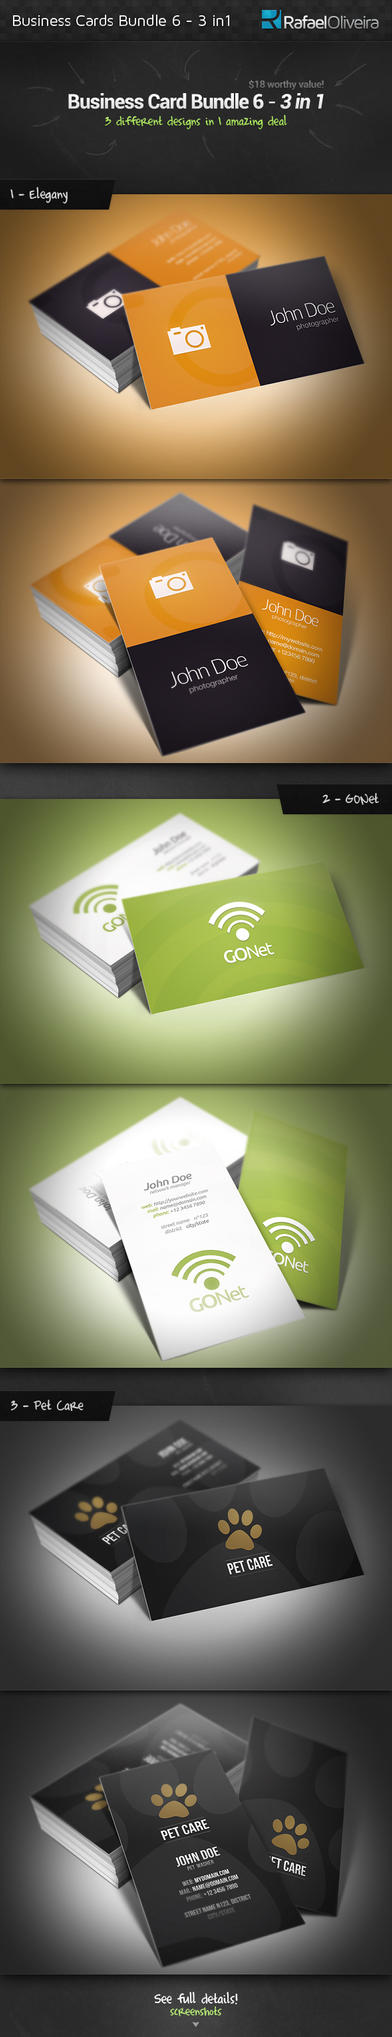 Business Cards Bundle 6 - 3 in 1 by Rafael-Olivra